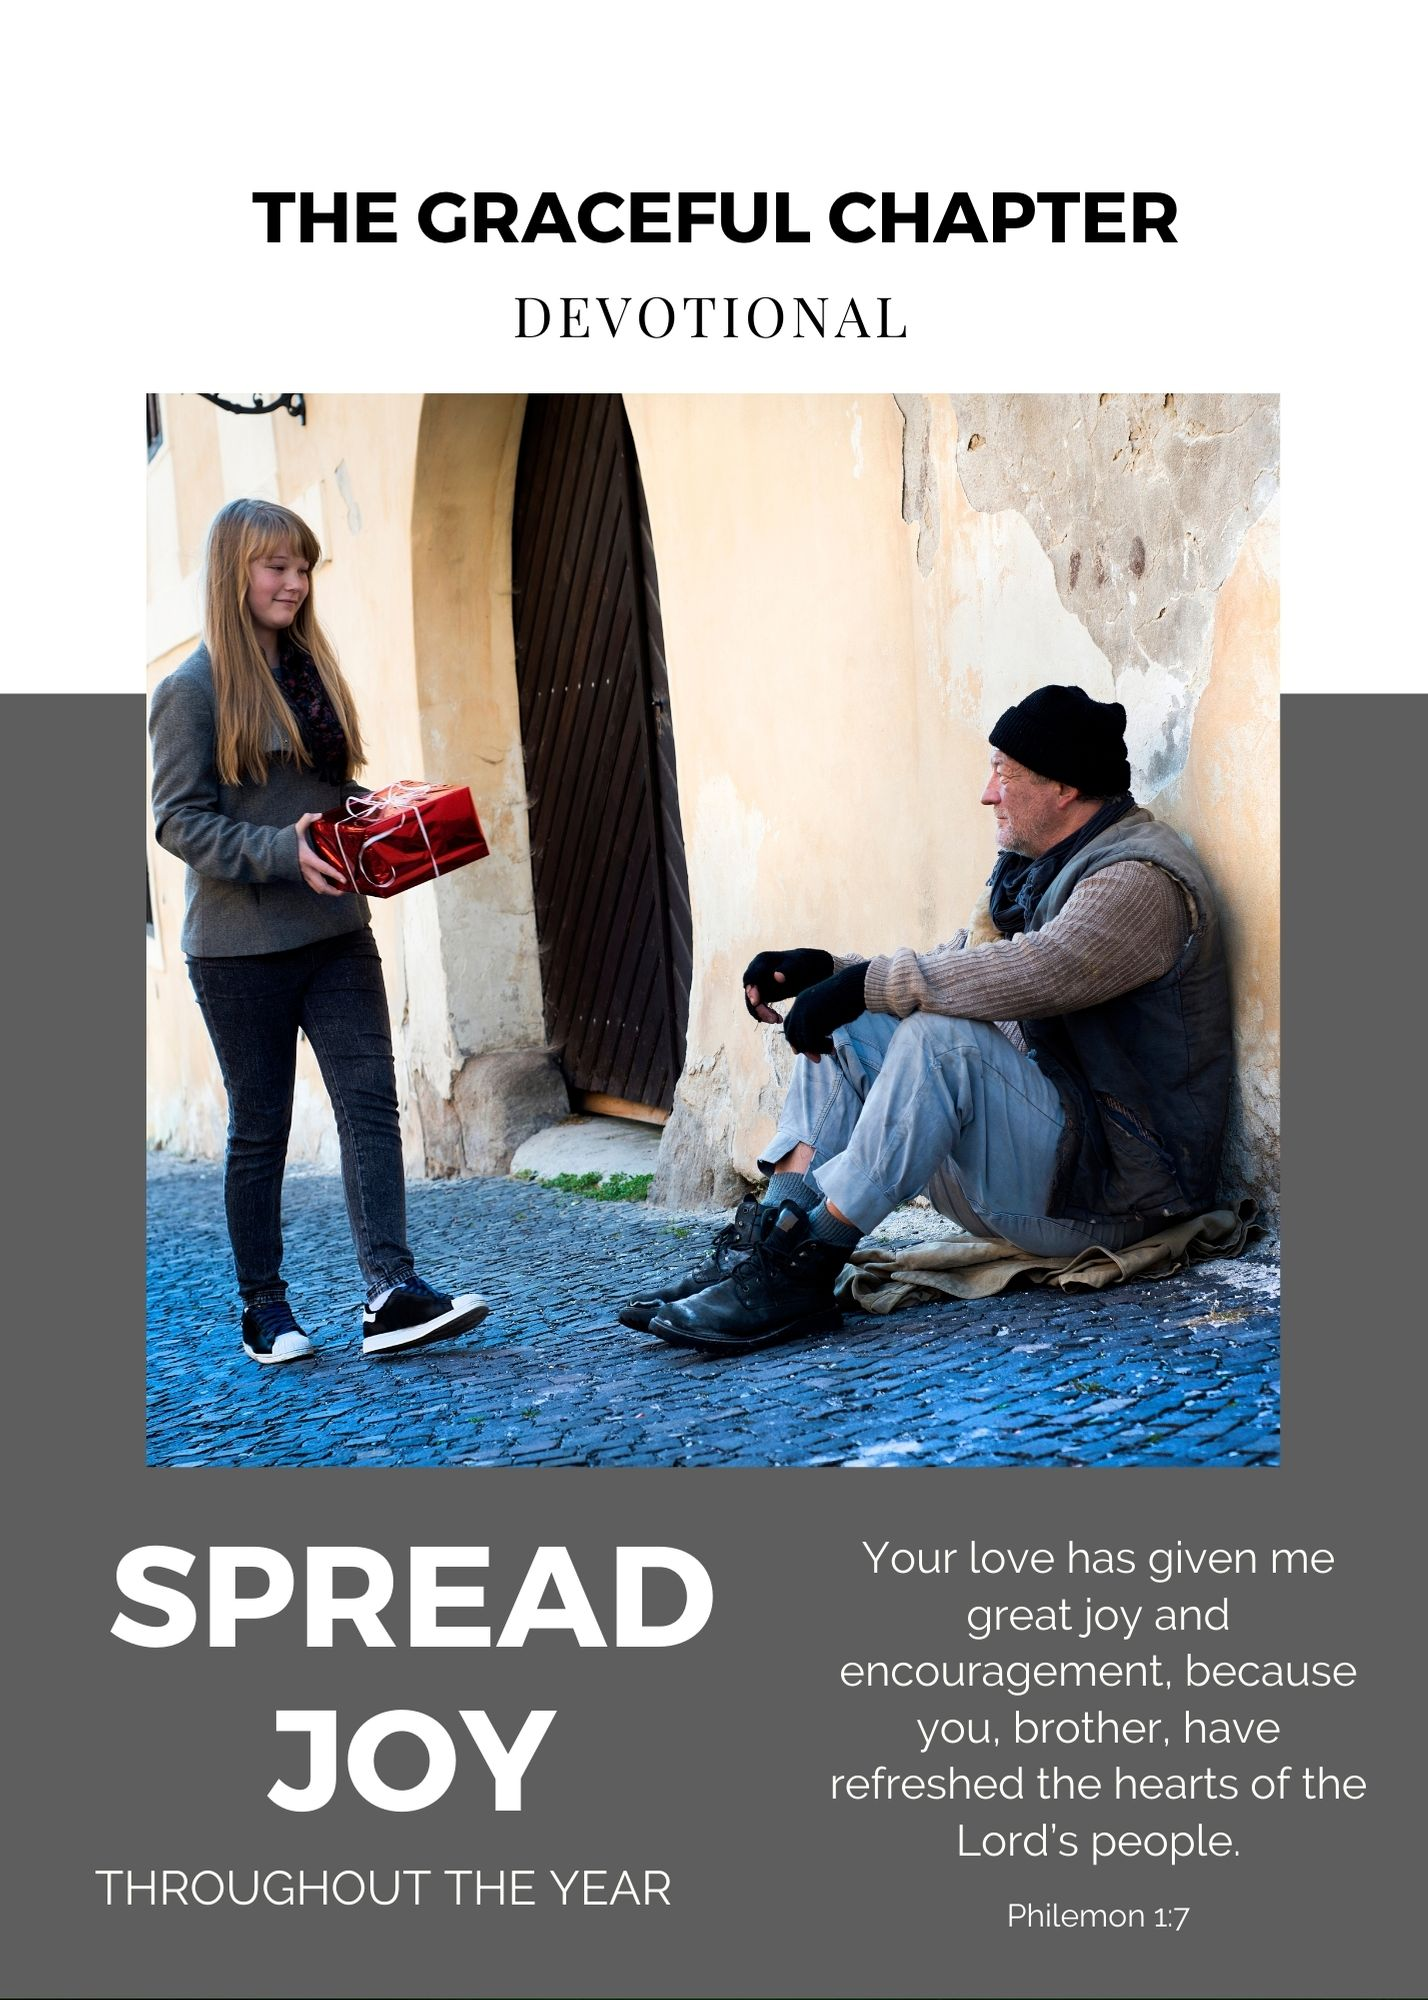 Devotional - spread joy